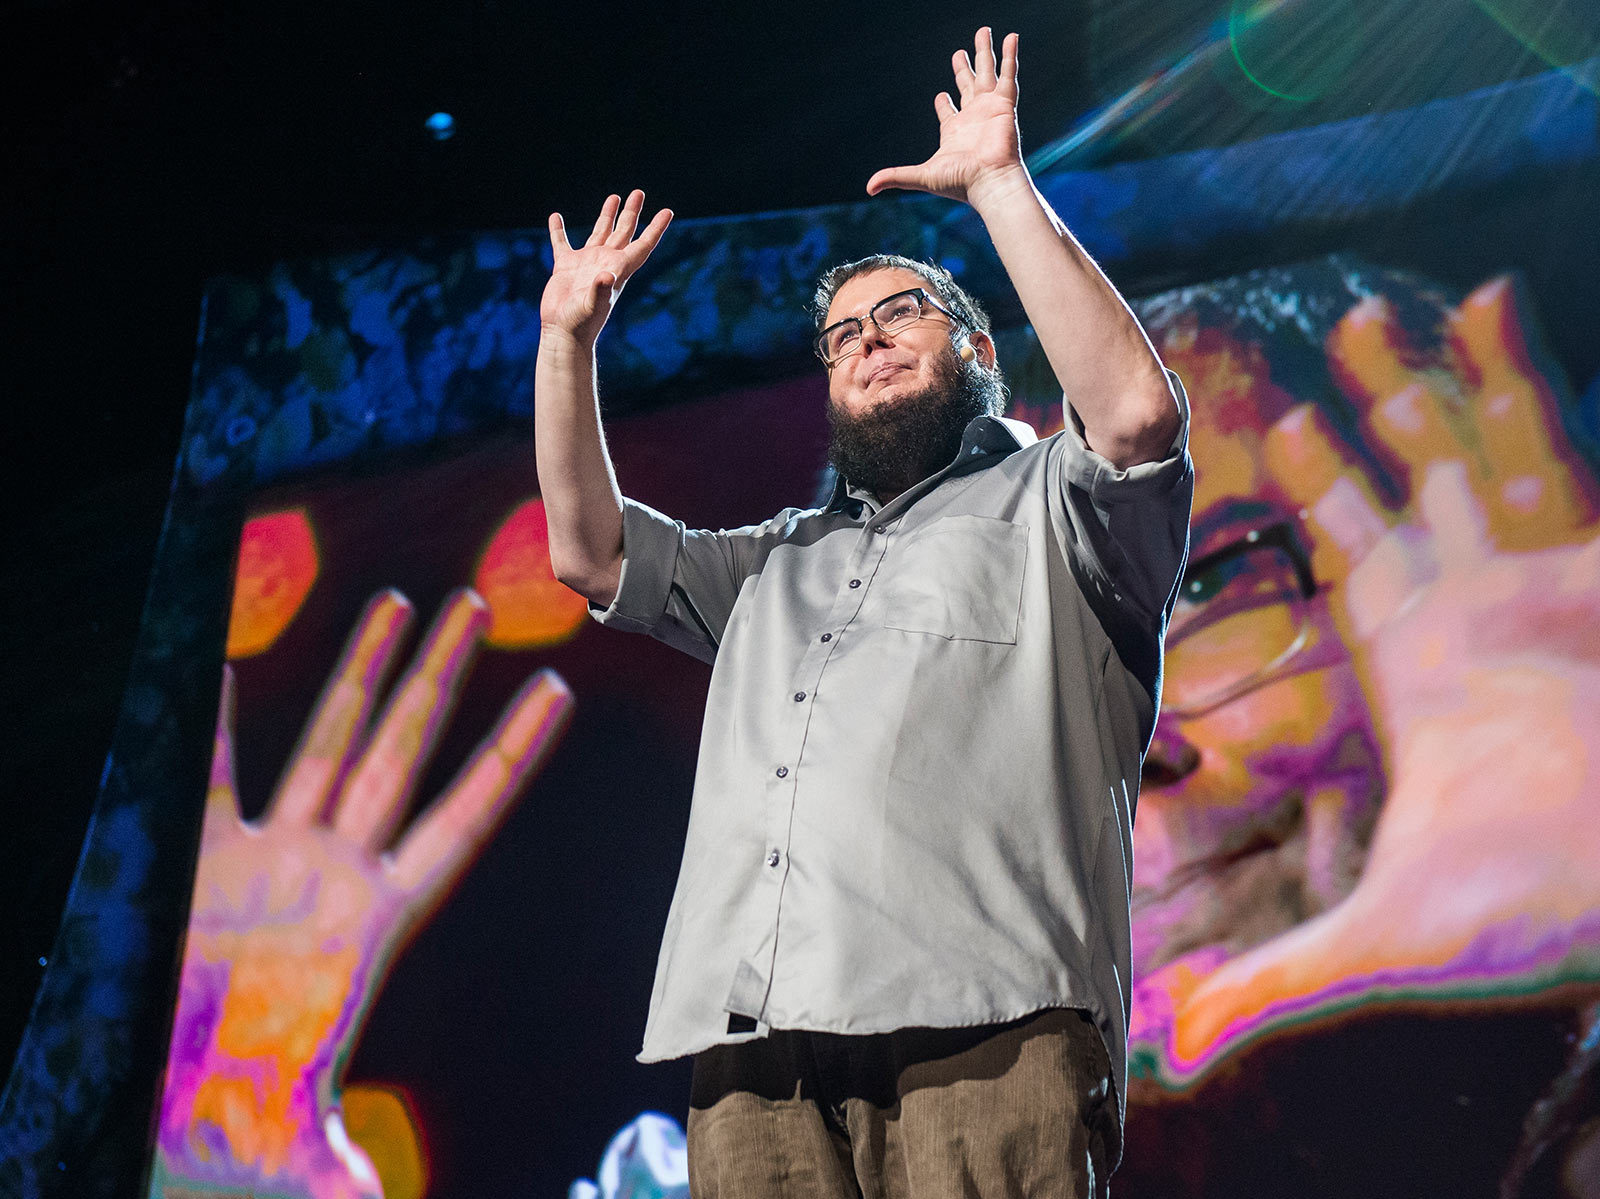 Shane Koyczan: What's It Like To Be Young And Bullied?